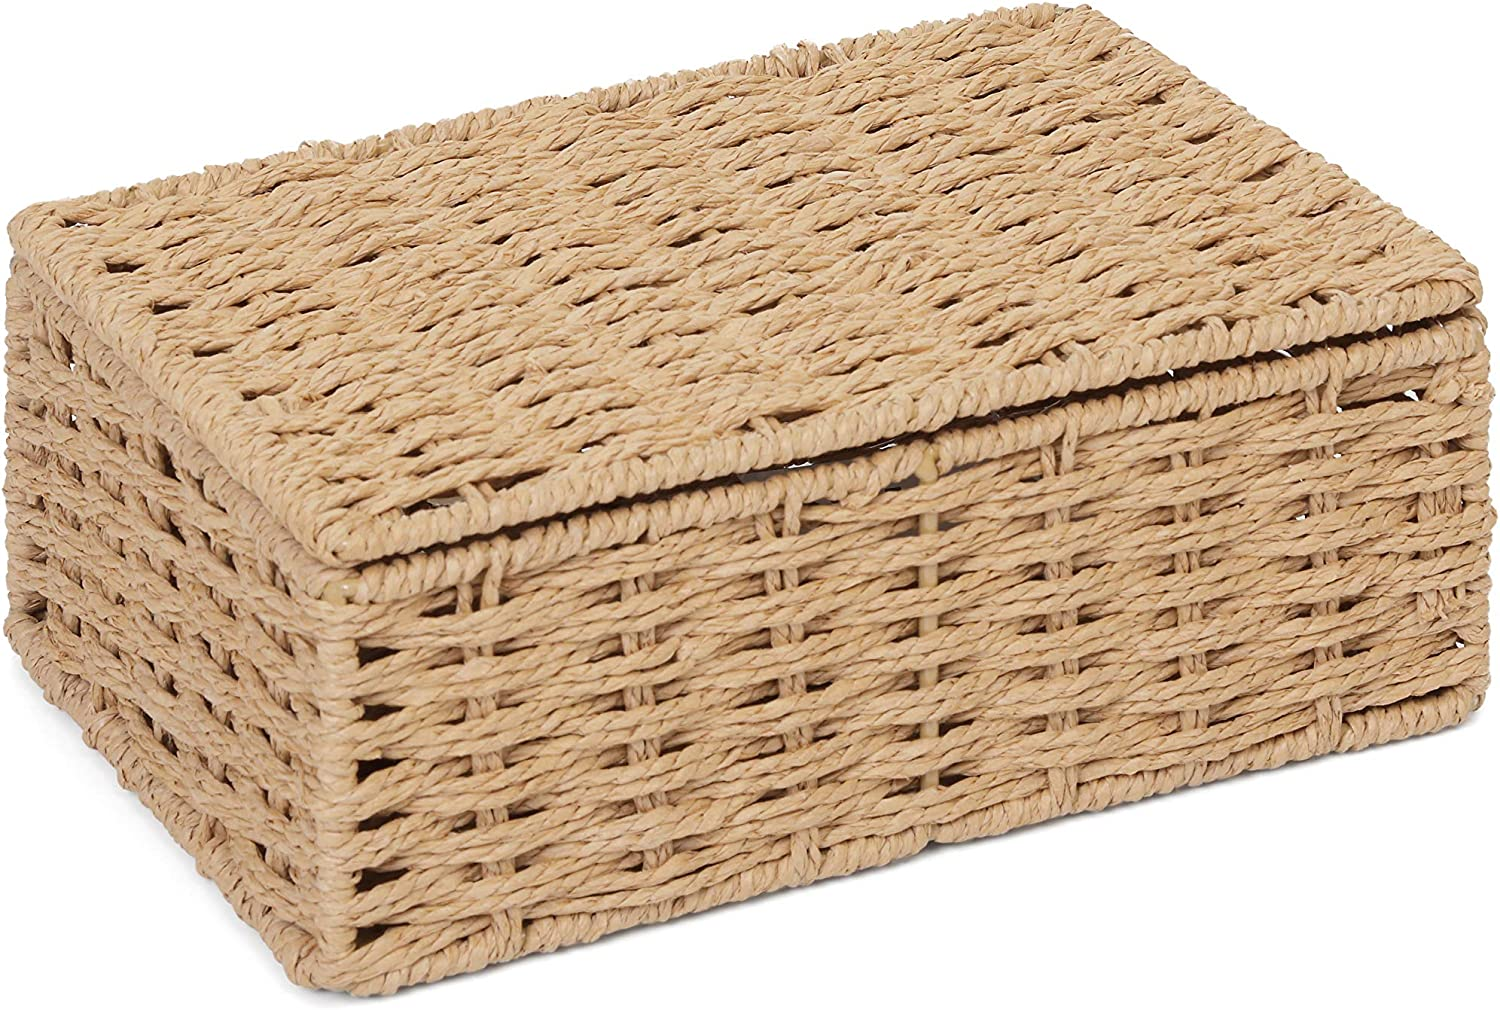 ARPAN 2 x Paper Rope Storage Hamper Basket With Lid - Ideal For Home/Office & Gifts Hamper (Natural - Small)